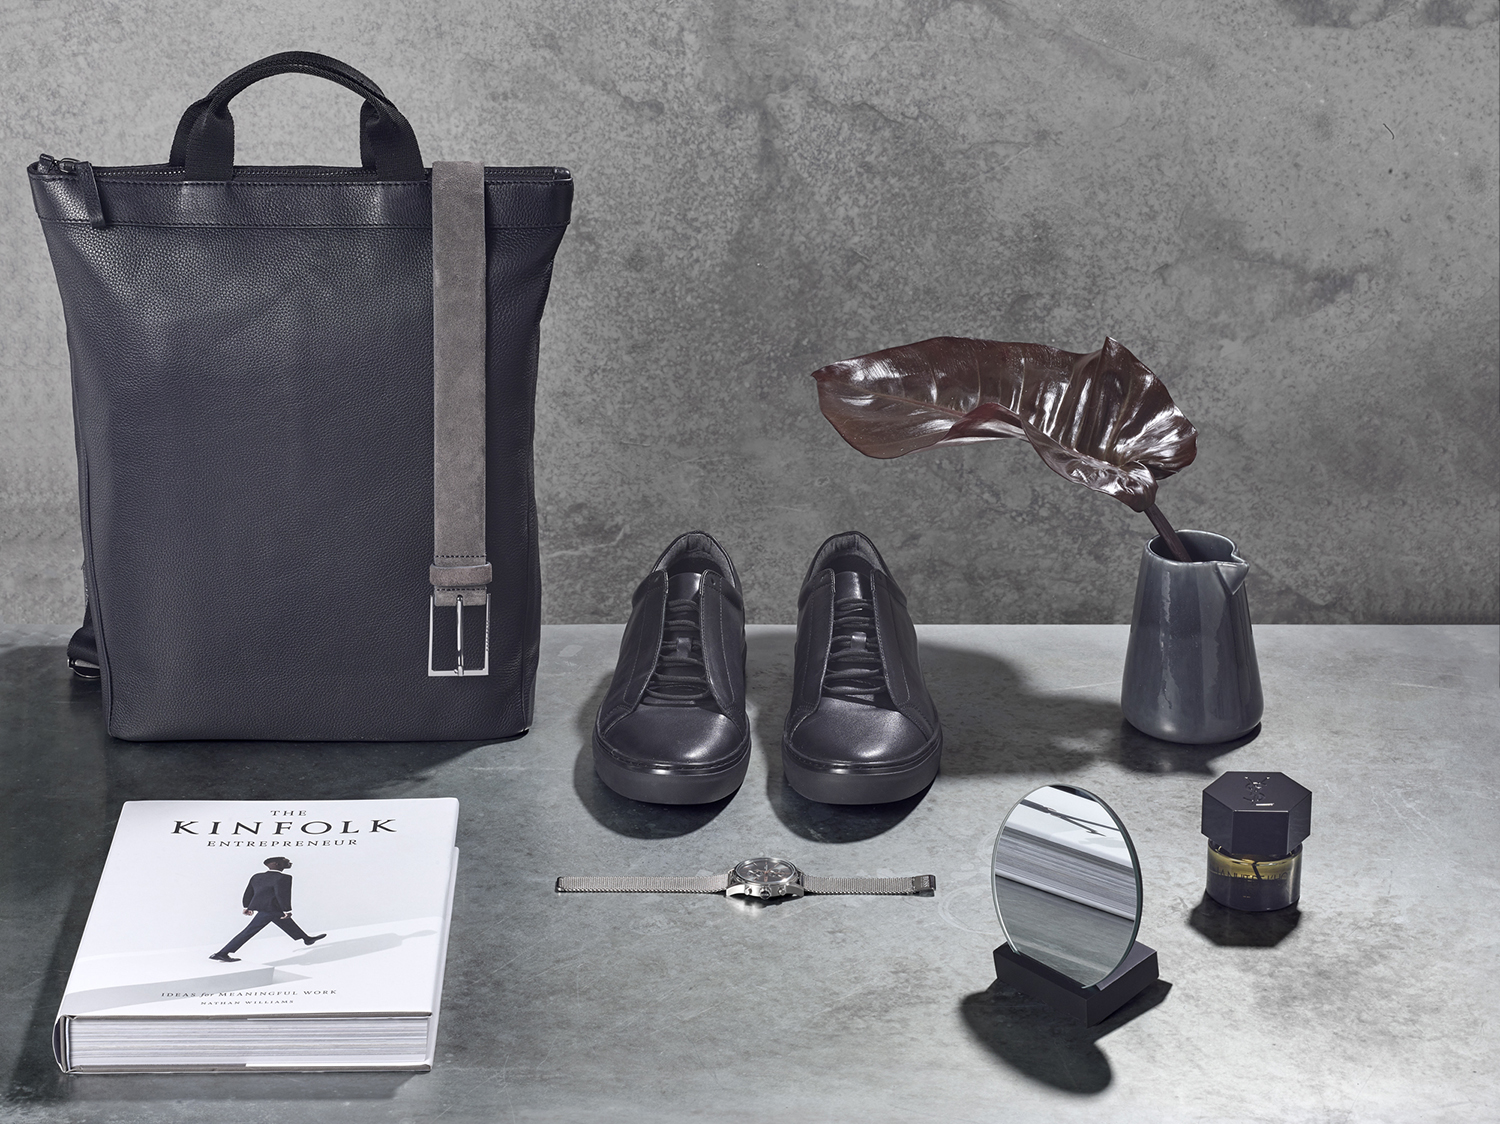 Mens accessories creative still life product photography. Product photographer Chris Howlett creates still life composition using products found at shipping centre. carefully composed products with distinctive studio lighting, created in London